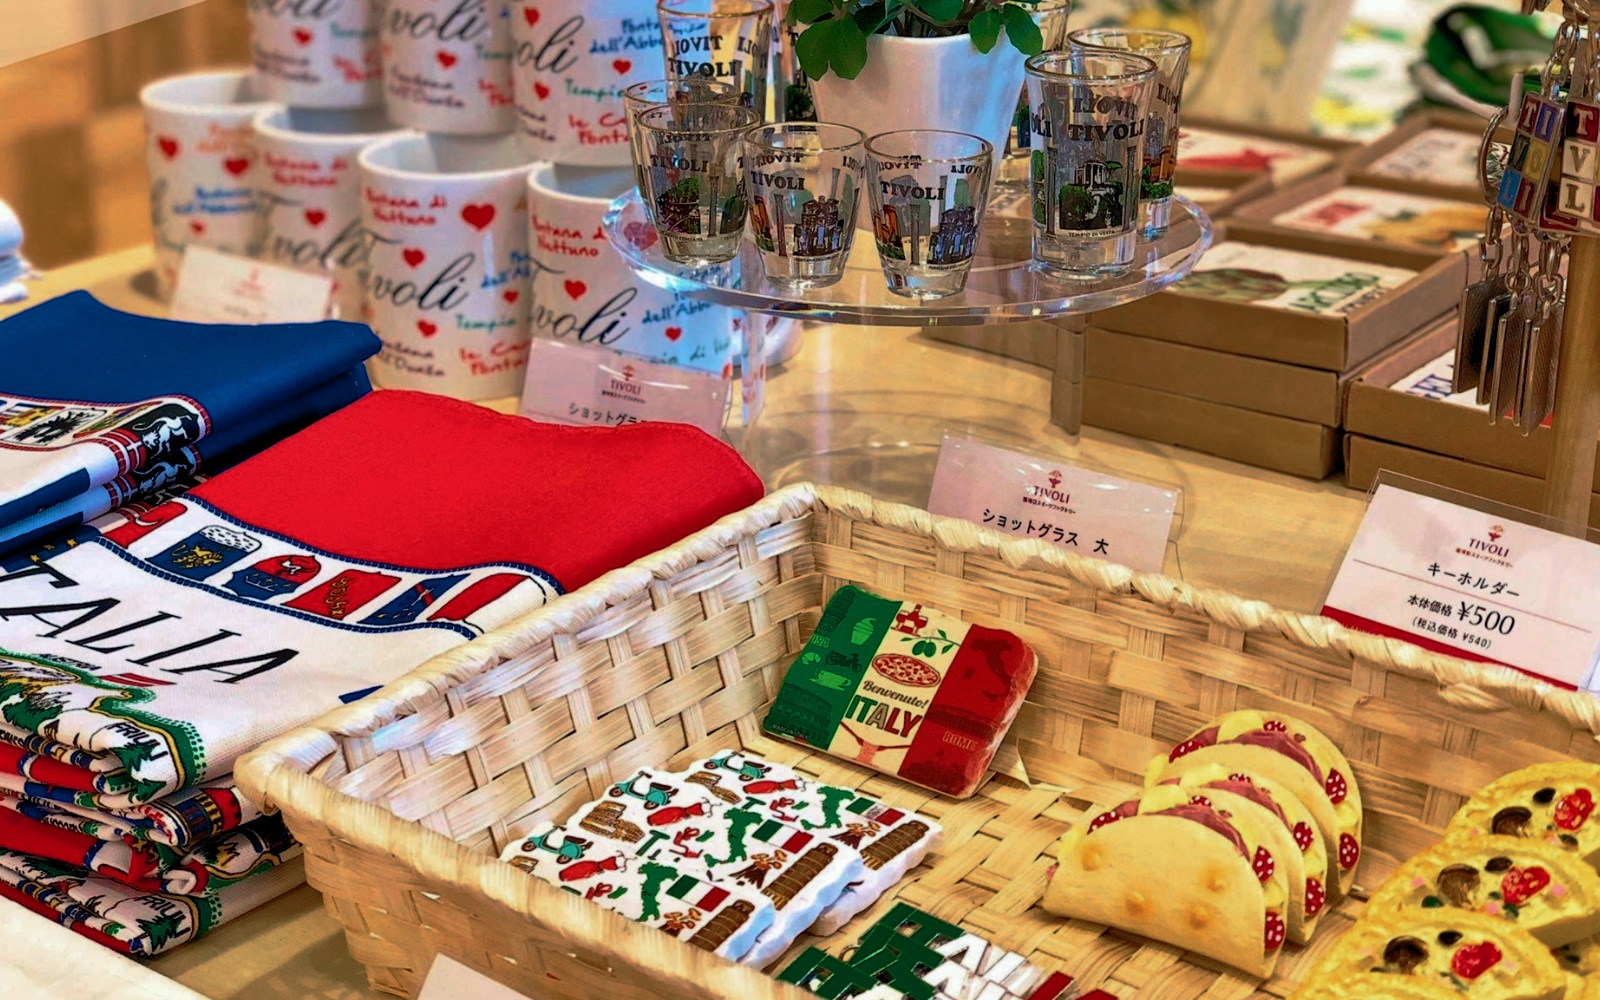 Tivoli Italian-themed goods.jpg